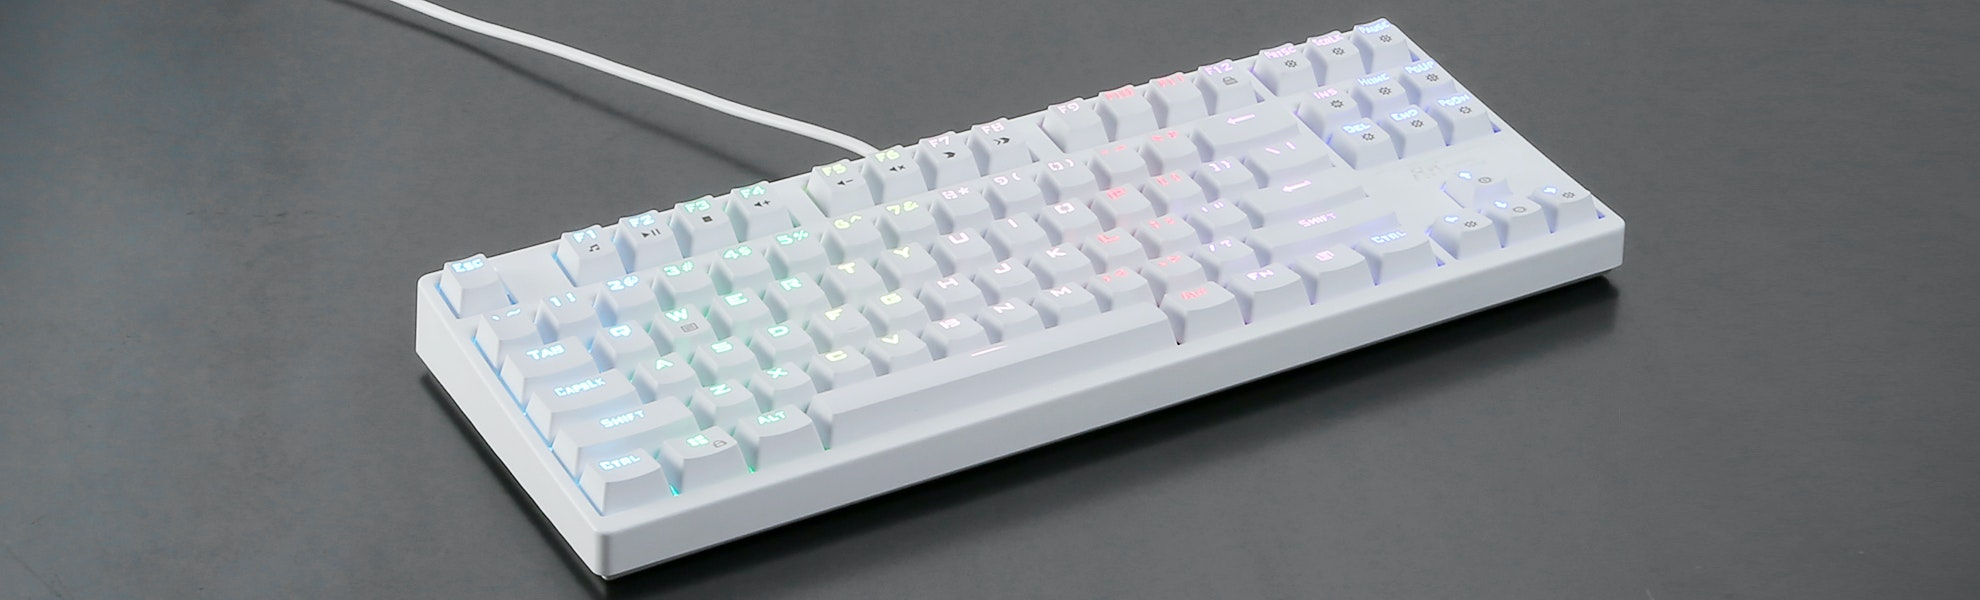 Royal Kludge RG-987/928 Mechanical Keyboard